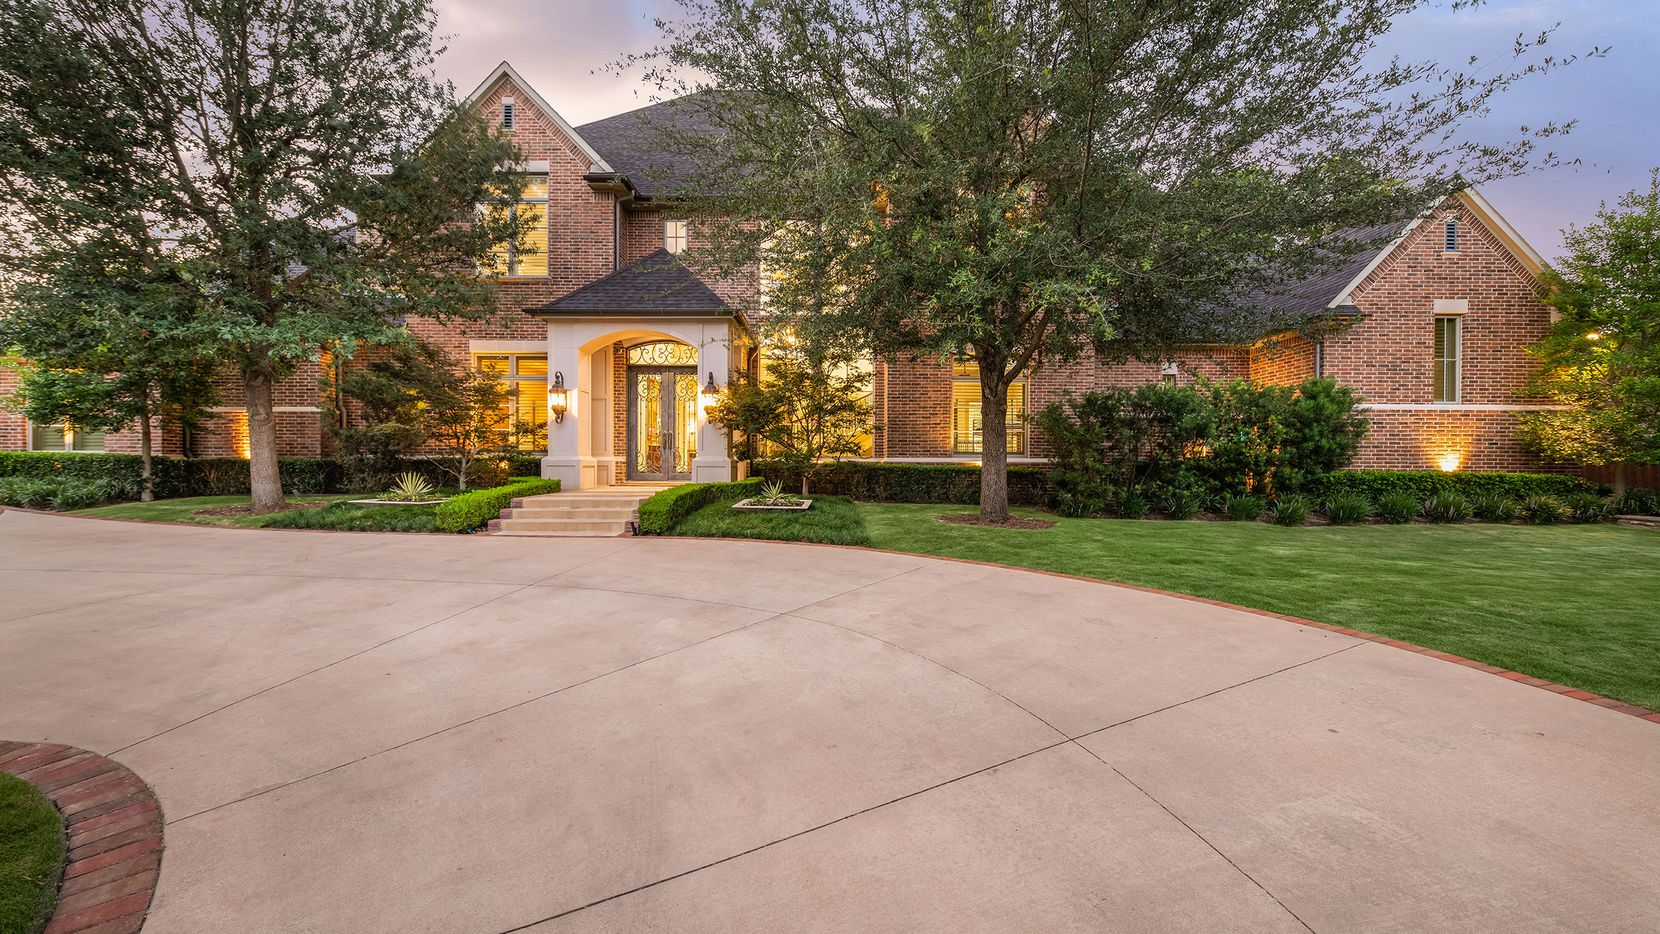 Allie Beth Allman & Associates has led the market in luxury homes sales.